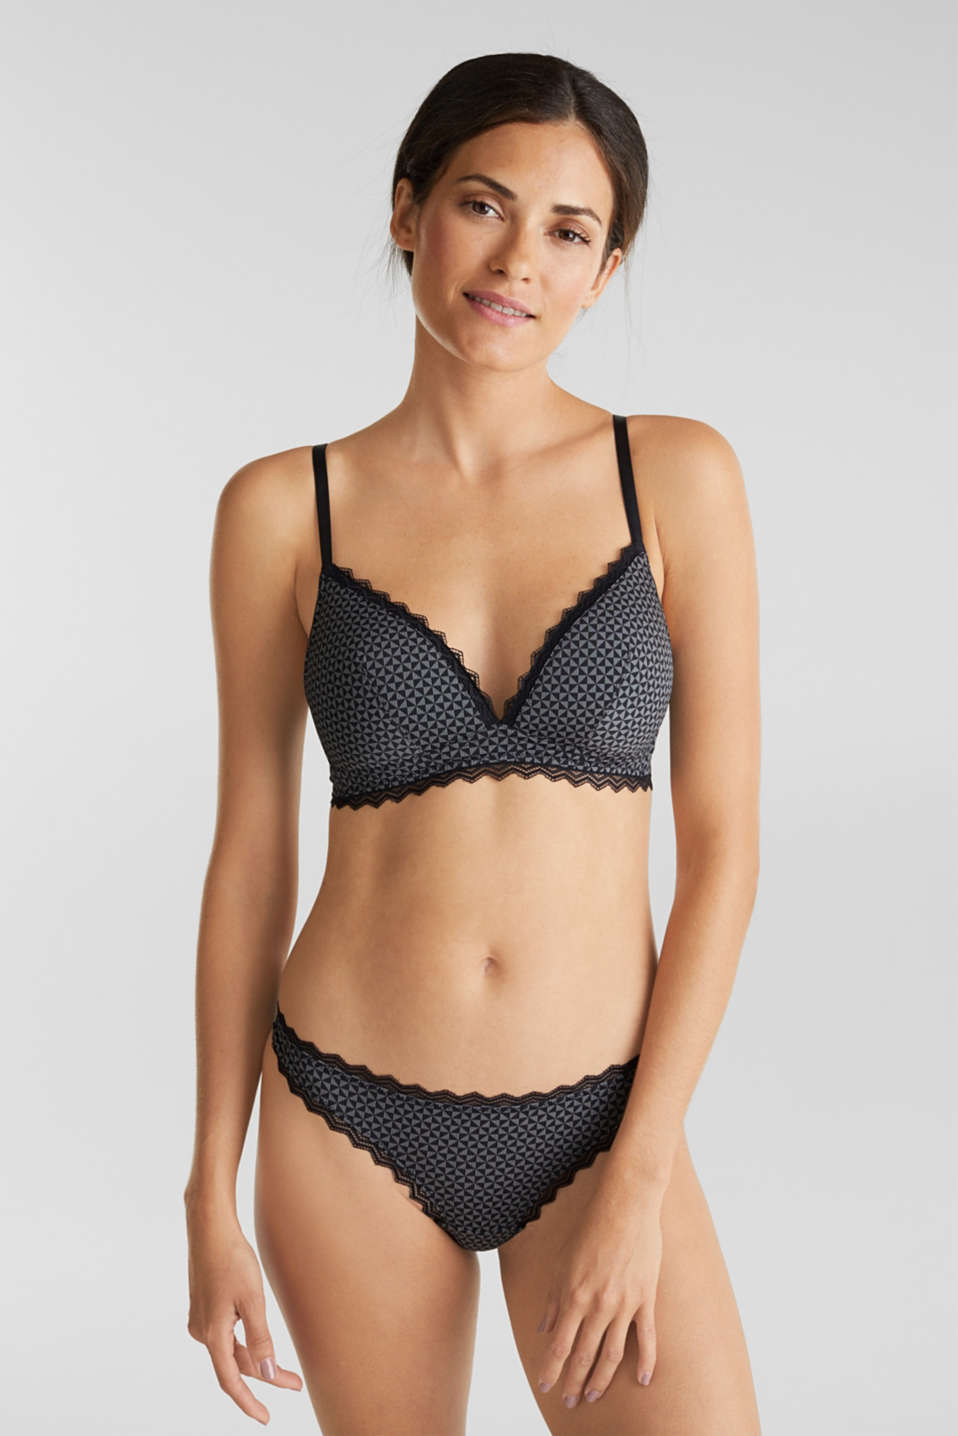 Esprit - Padded, wireless bra trimmed with lace